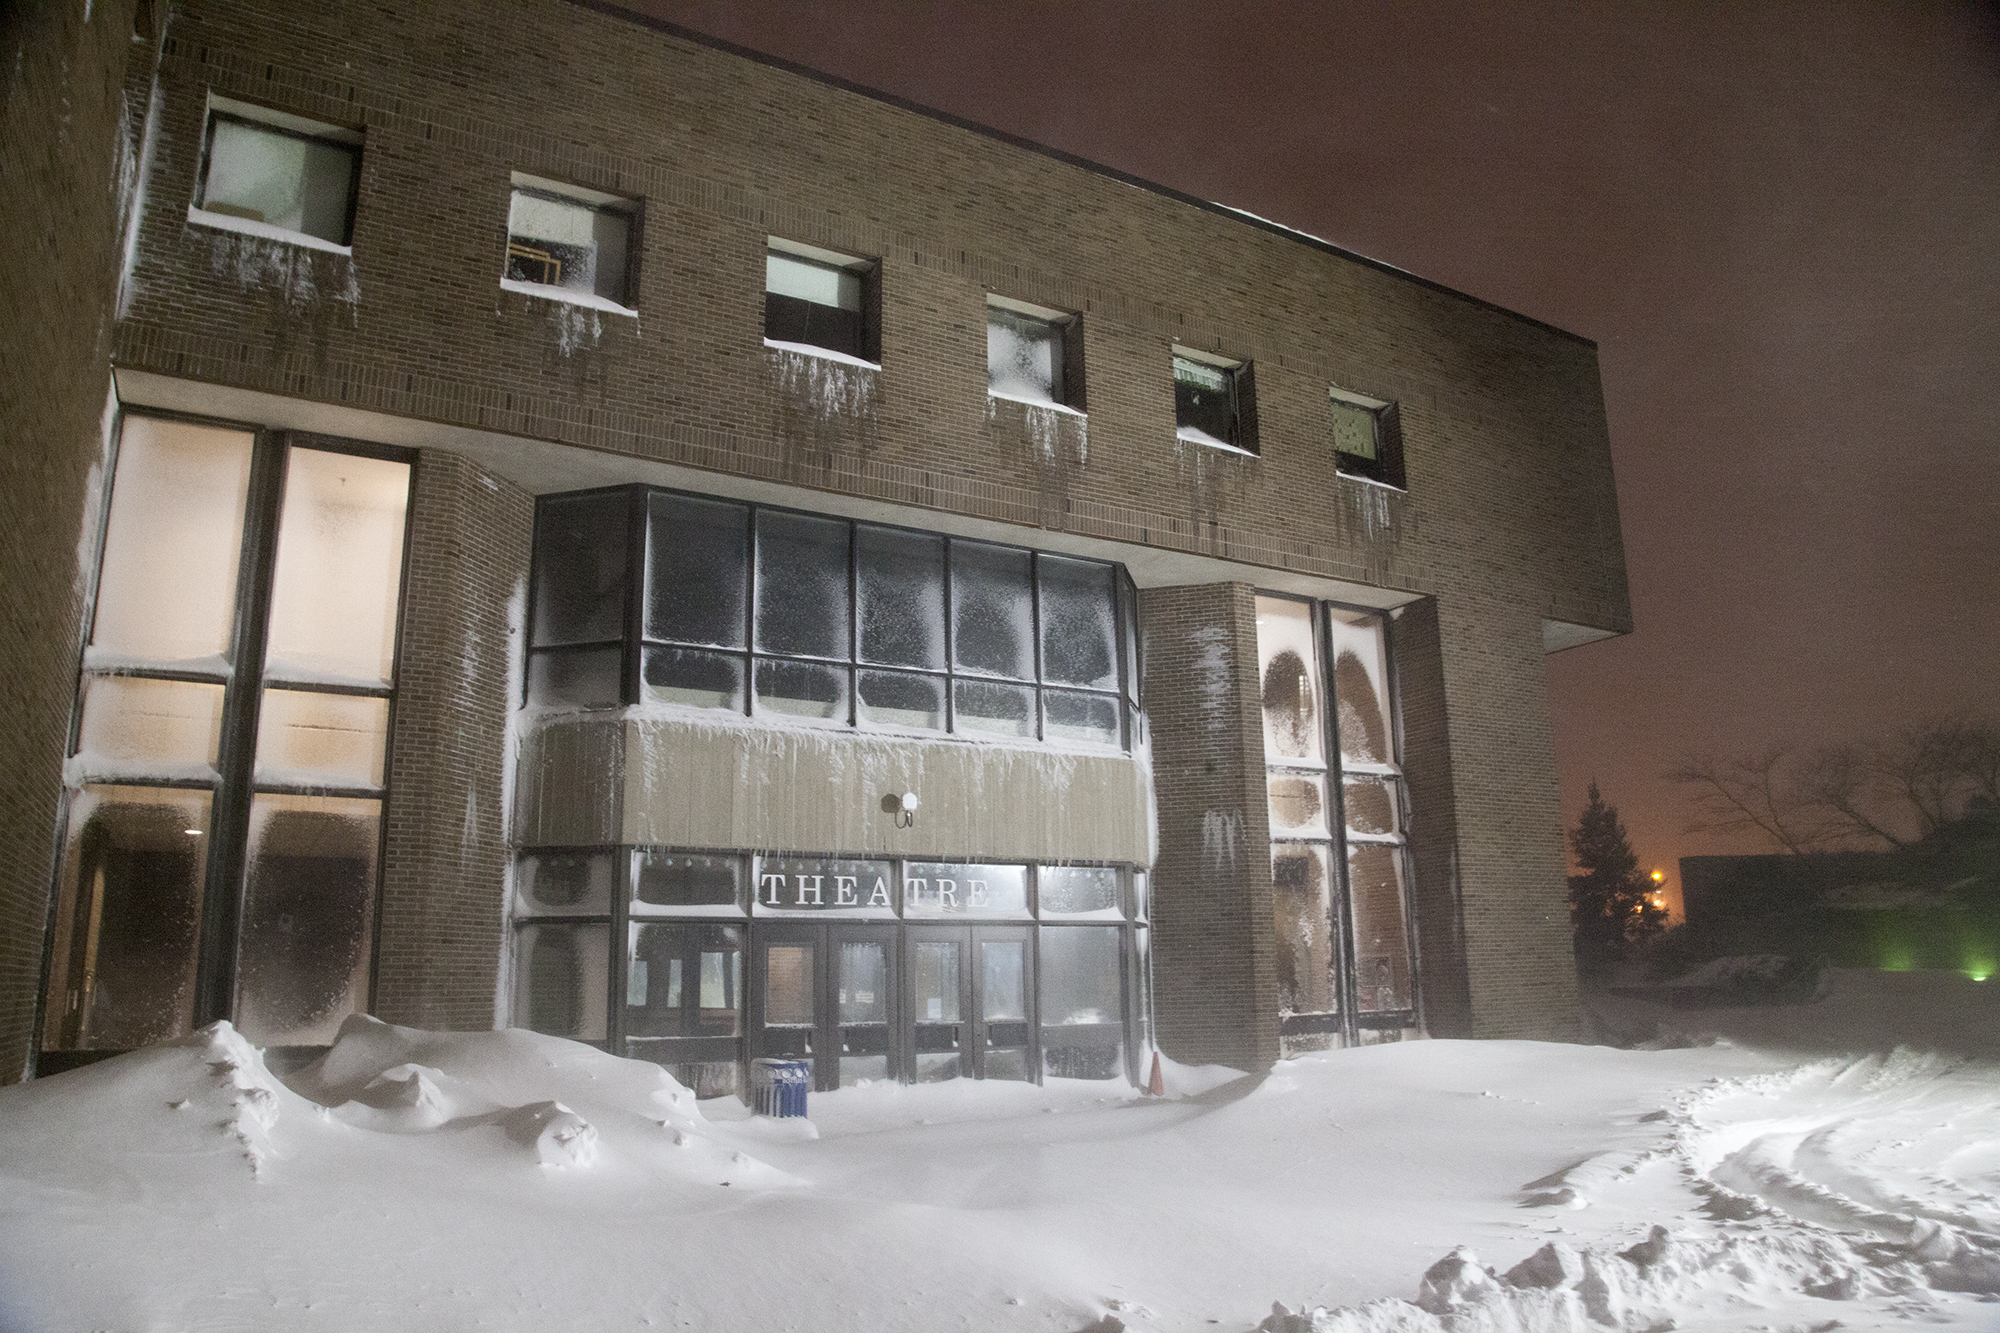 The Staller Center at Stony Brook University during Winter Storm Jonas on Saturday, Jan. 23. All events at the Staller Center were cancelled on Saturday due to the storm. CHRISTOPHER CAMERON/THE STATESMAN